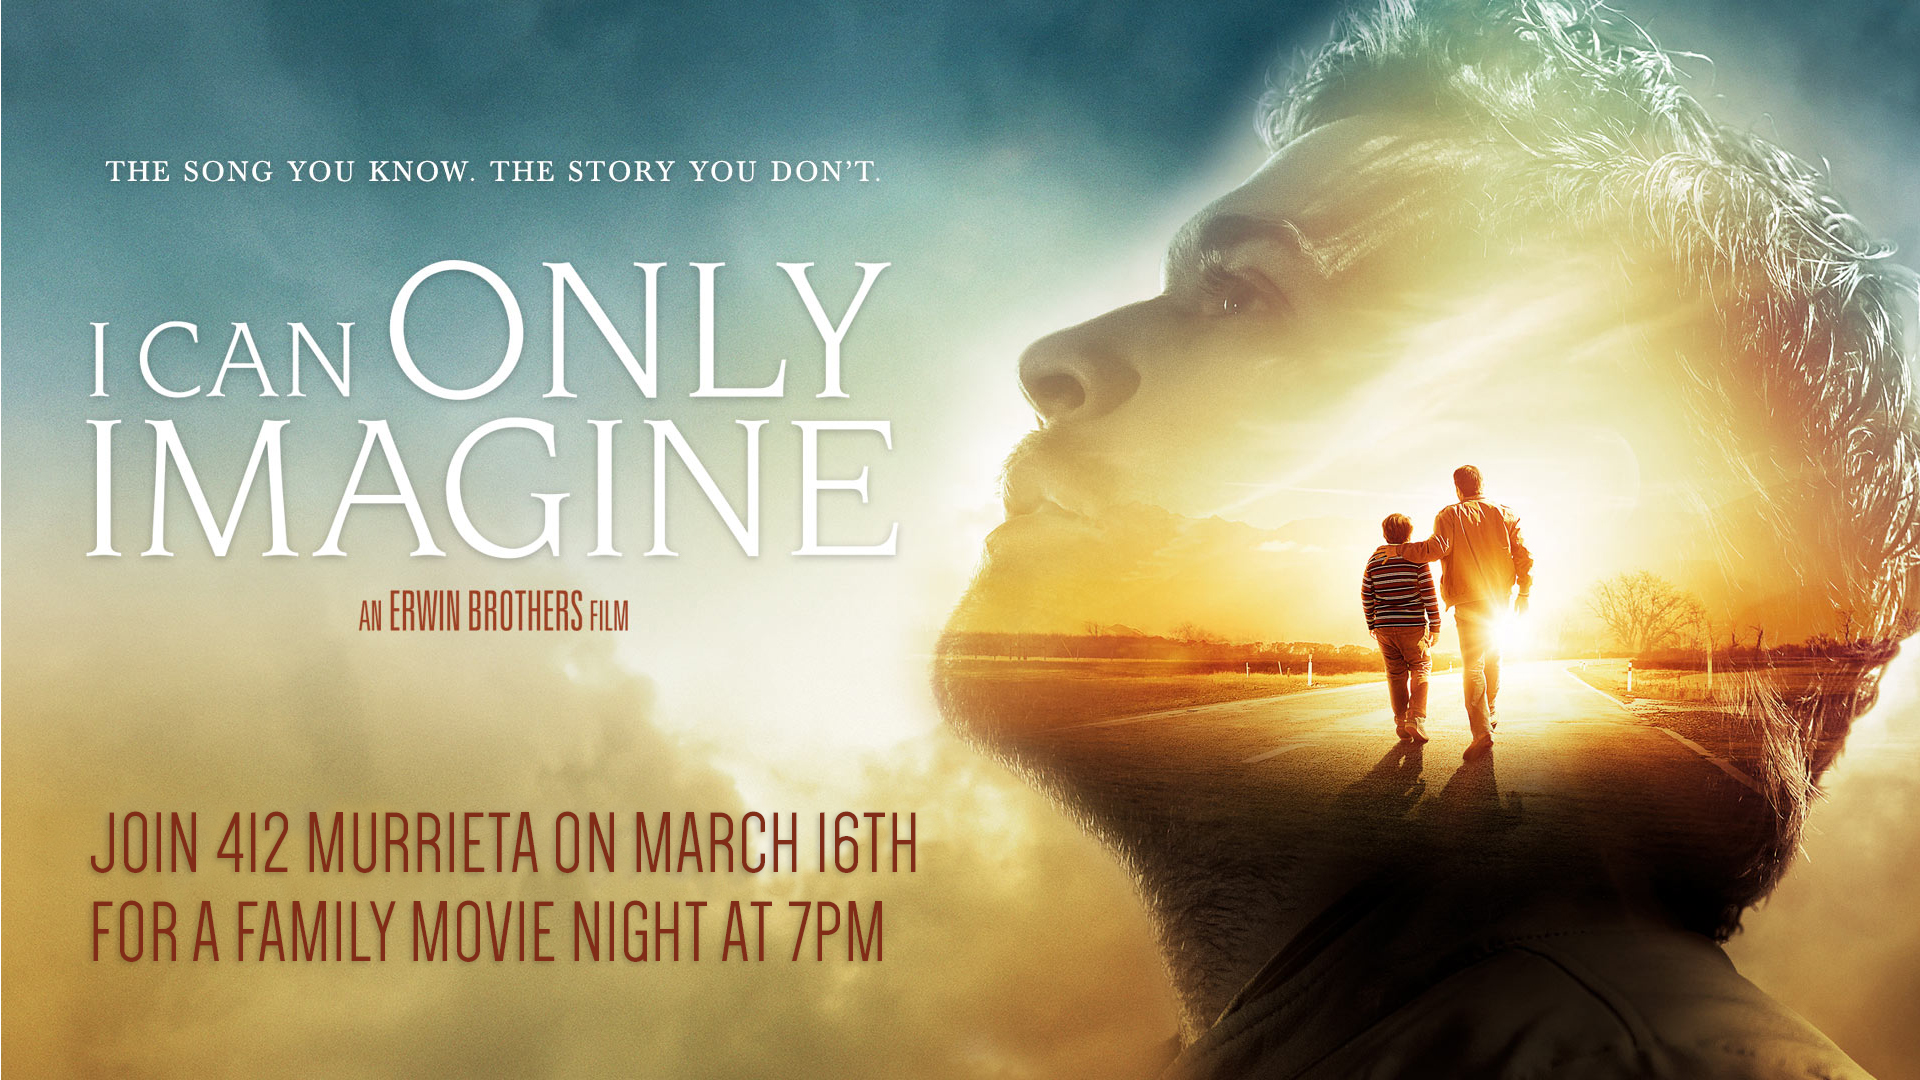 ICanOnlyImagine_Movie_Night_WEB.jpg